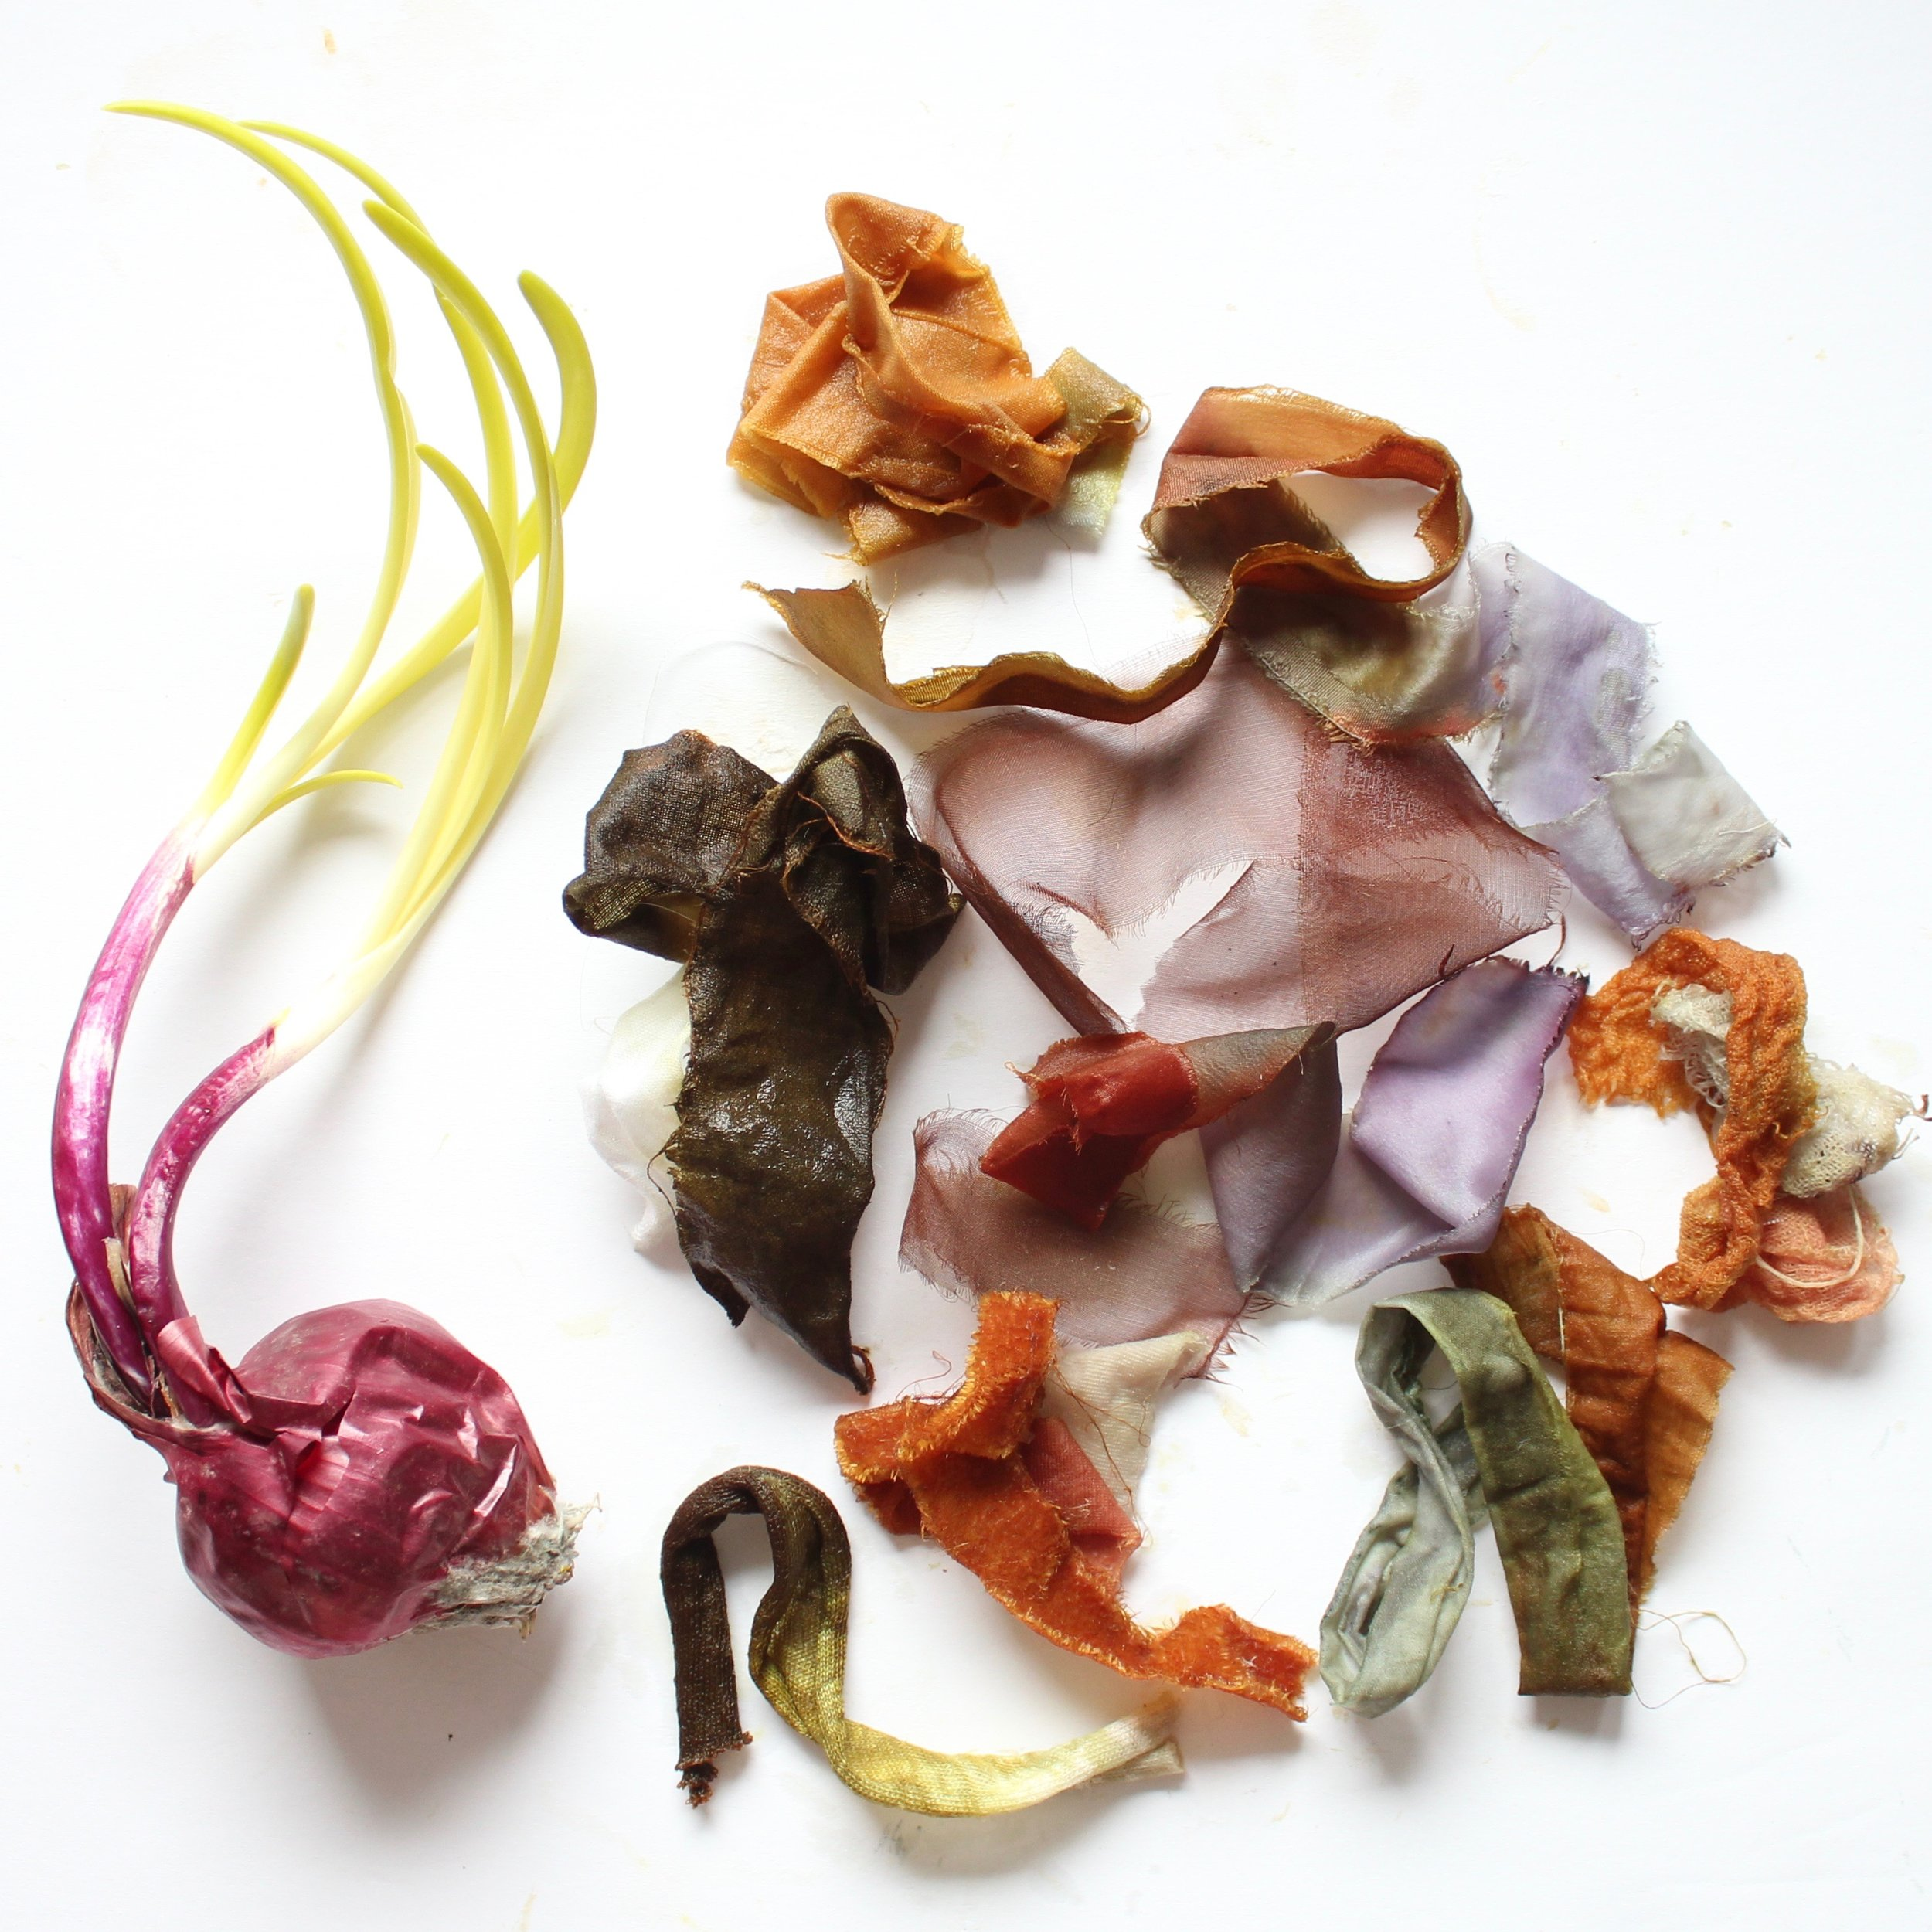 Red Onion Skins  The skin of a red onion can create a whole spectrum of color from chartreuse to army greens, lavender to rust.